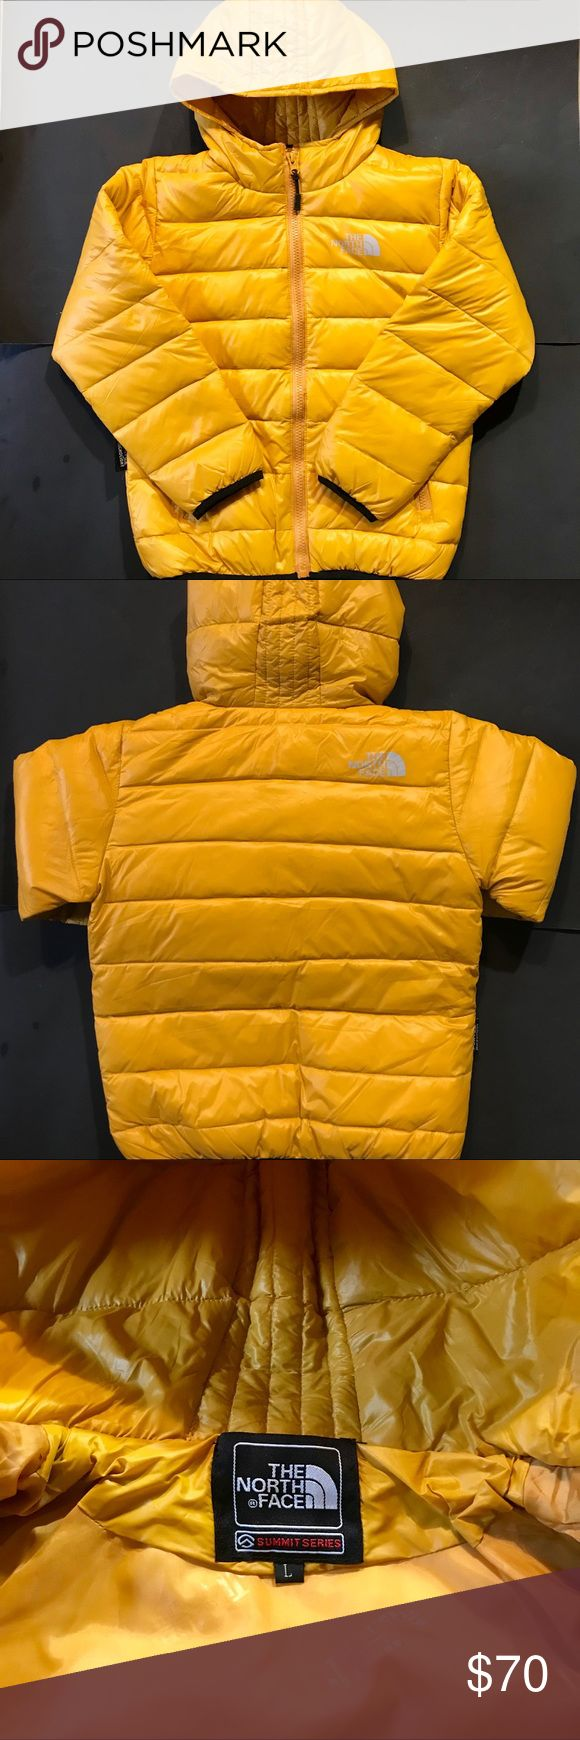 😃The North Face Jacket Yellow Kids (NEW!!😃 Kids North Face medium weight size Large (fits any kid from 6-9 yrs old) New W/o tags! Any questions feel free to ask☺️ The North Face Jackets & Coats Puffers